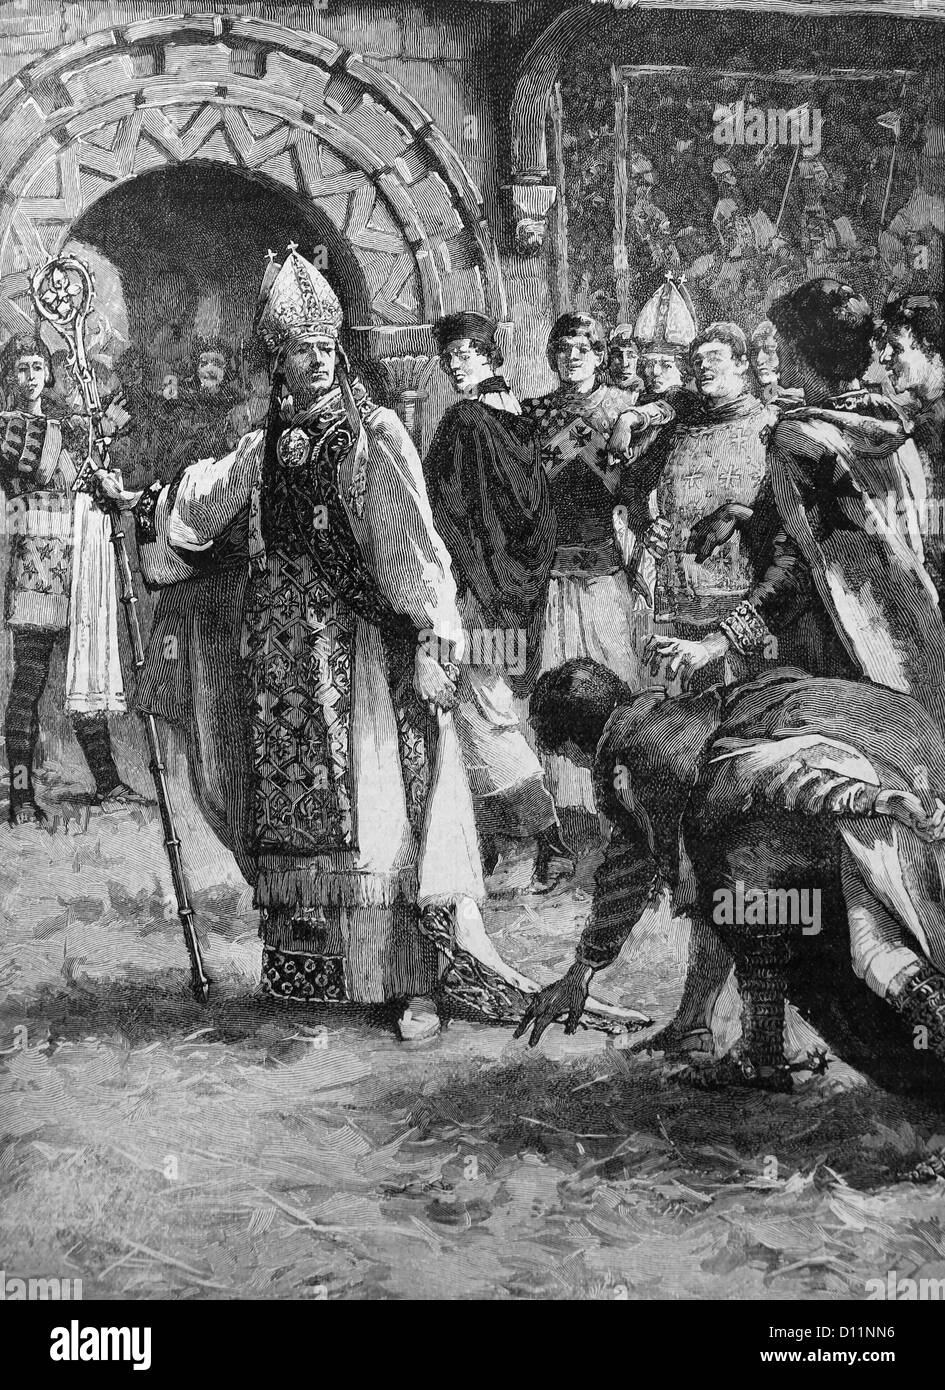 Illustration Of Archbishop Thomas Becket Before His Enemies In The Council Hall After Resisting Decisions Of King - Stock Image